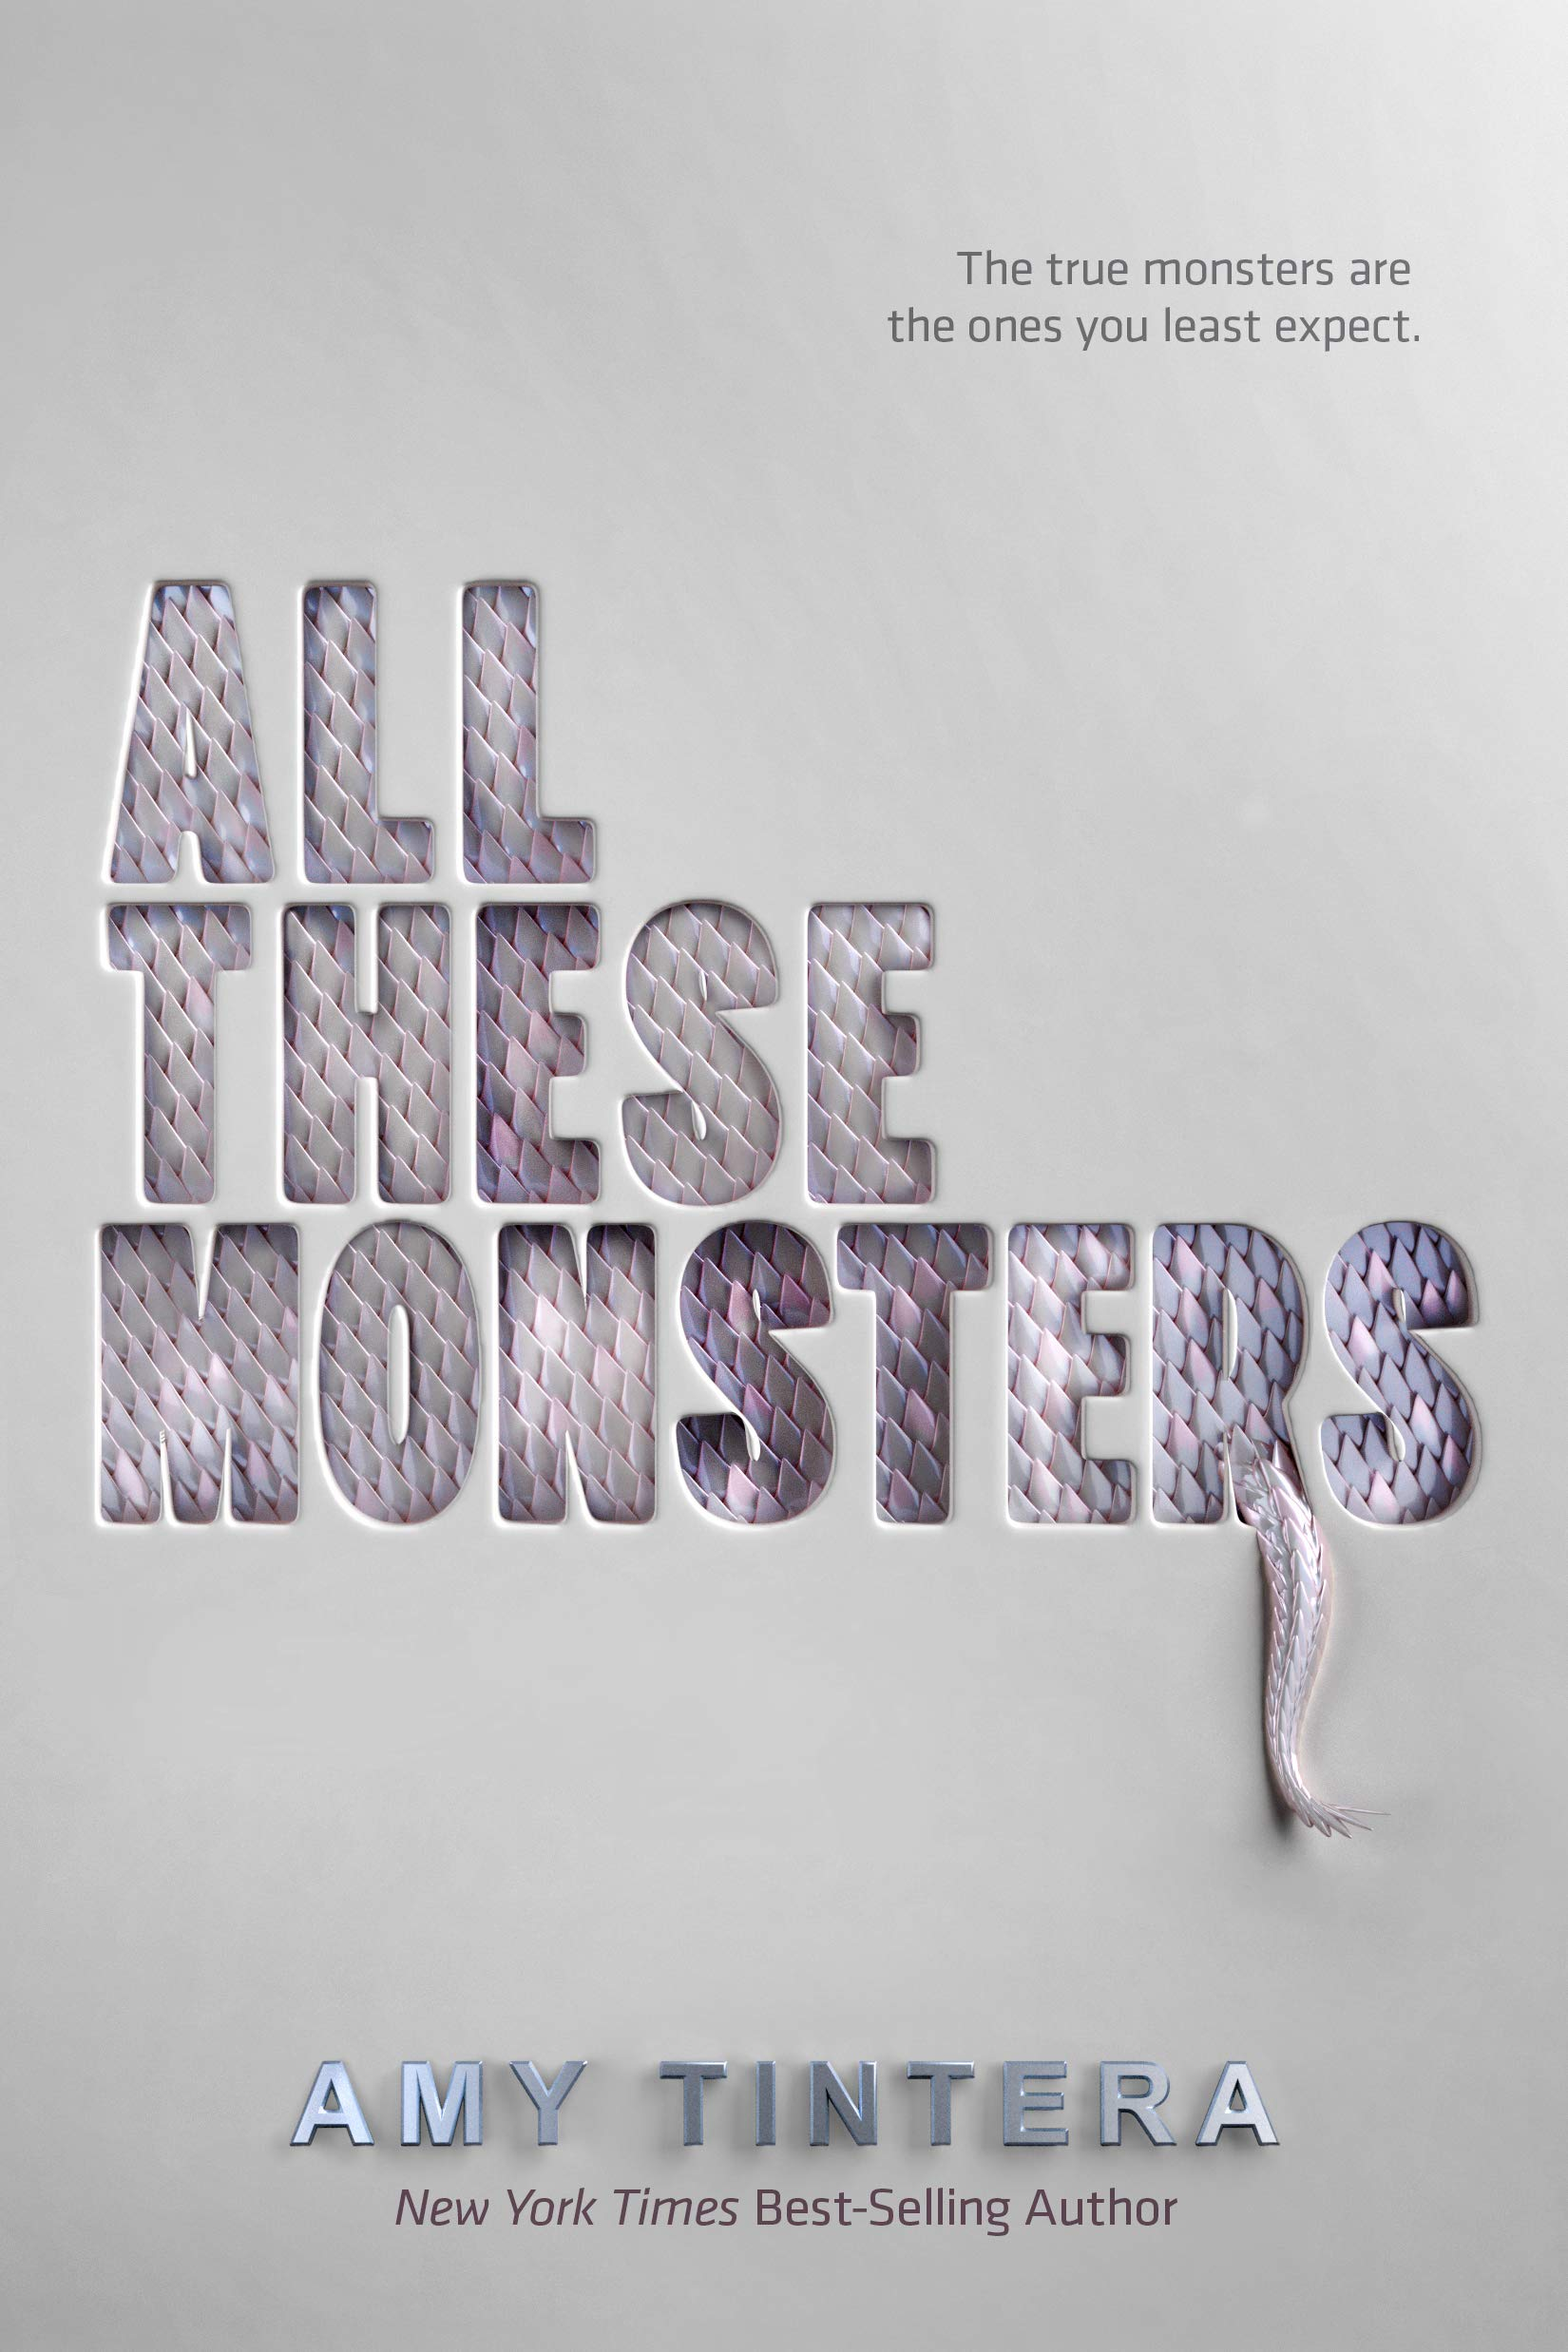 Amazon.com: All These Monsters: 9780358012405: Tintera, Amy: Books